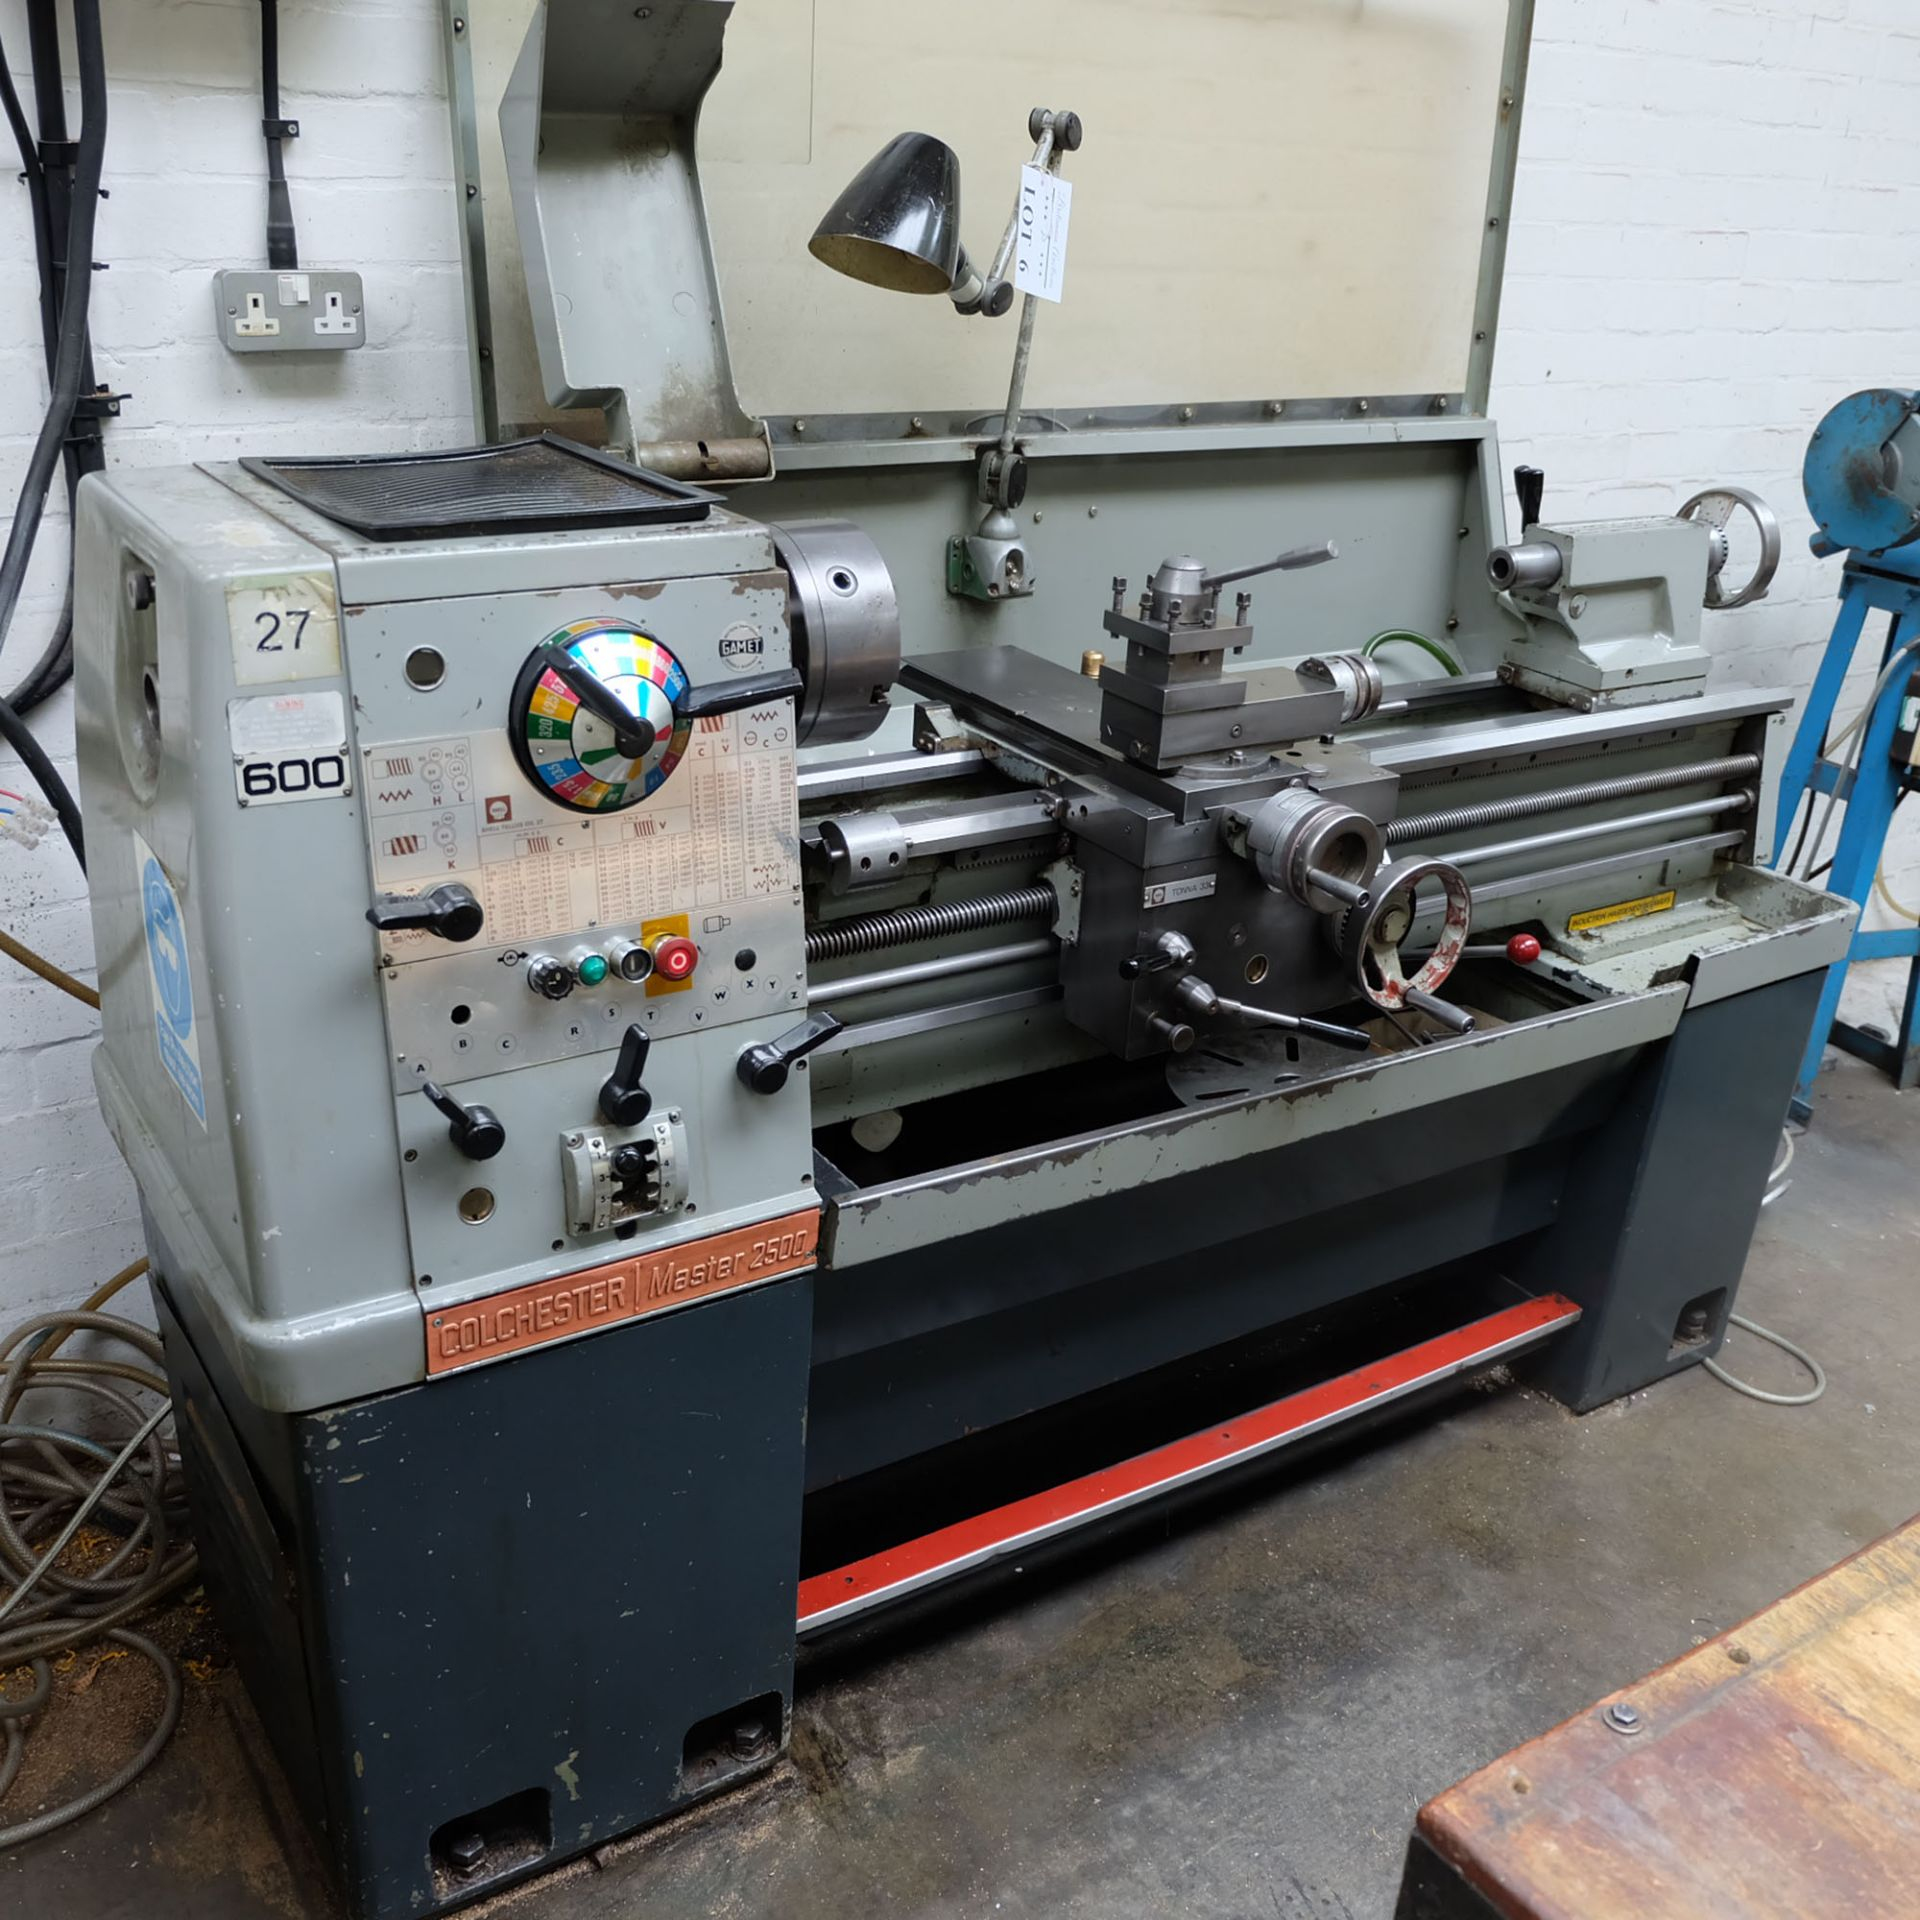 Colchester Master 2500 Gap Bed Centre Lathe. - Image 2 of 10